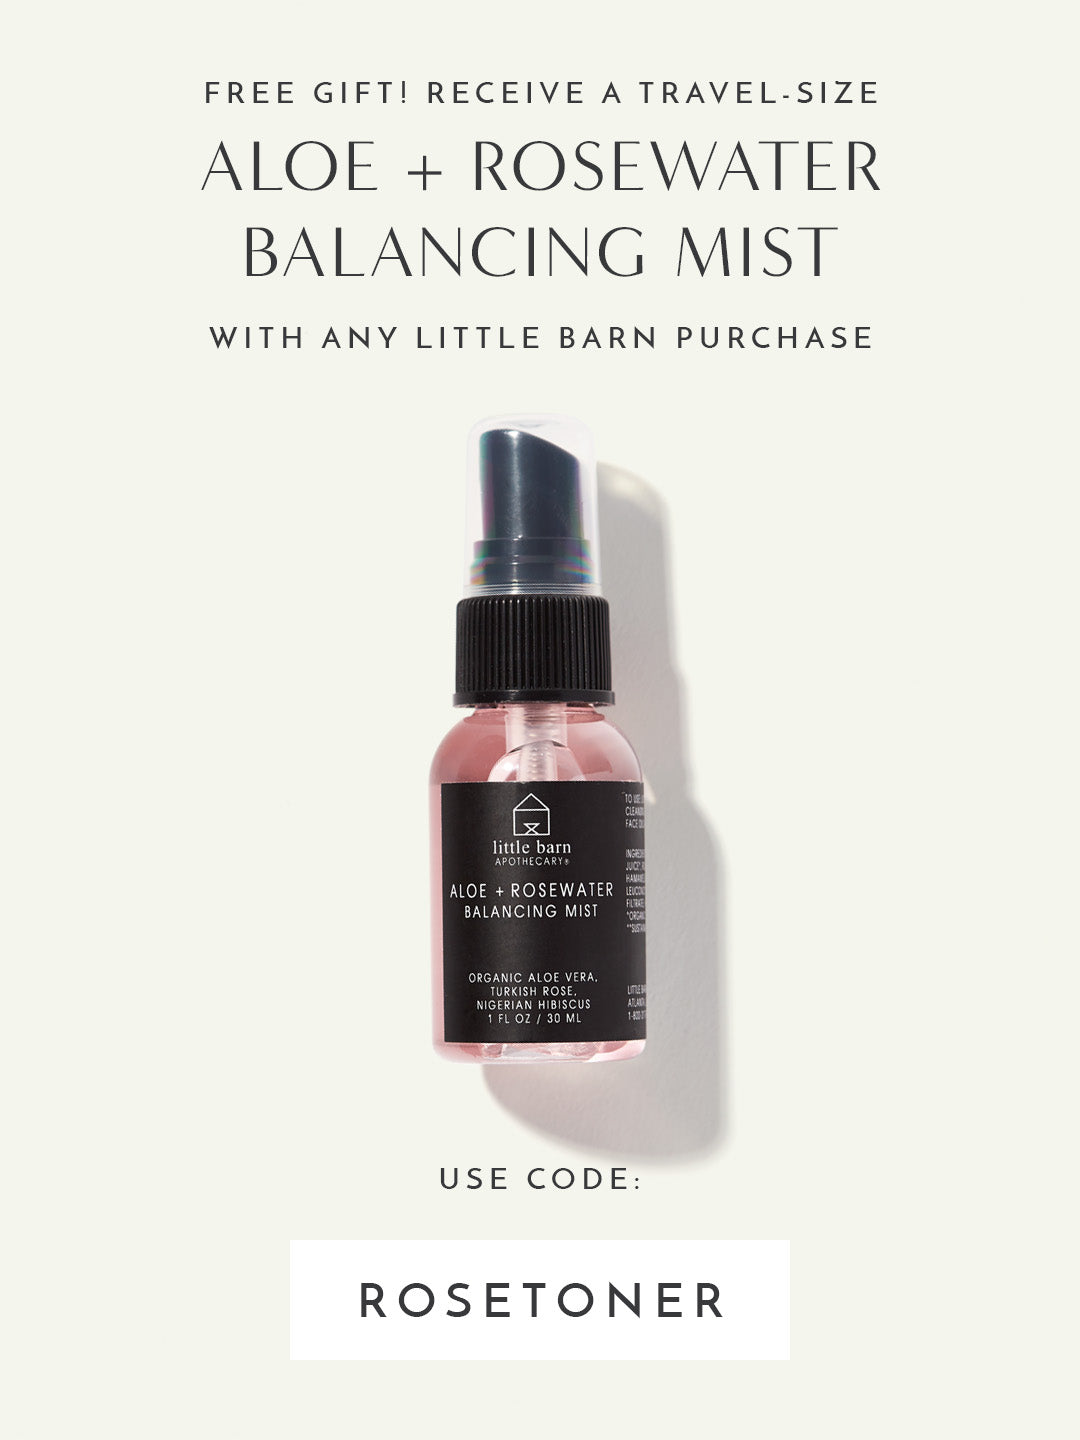 FREE Travel-Size Aloe + Rosewater Balancing Mist with any Little Barn Apothecary purchase. Use code: ROSETONER